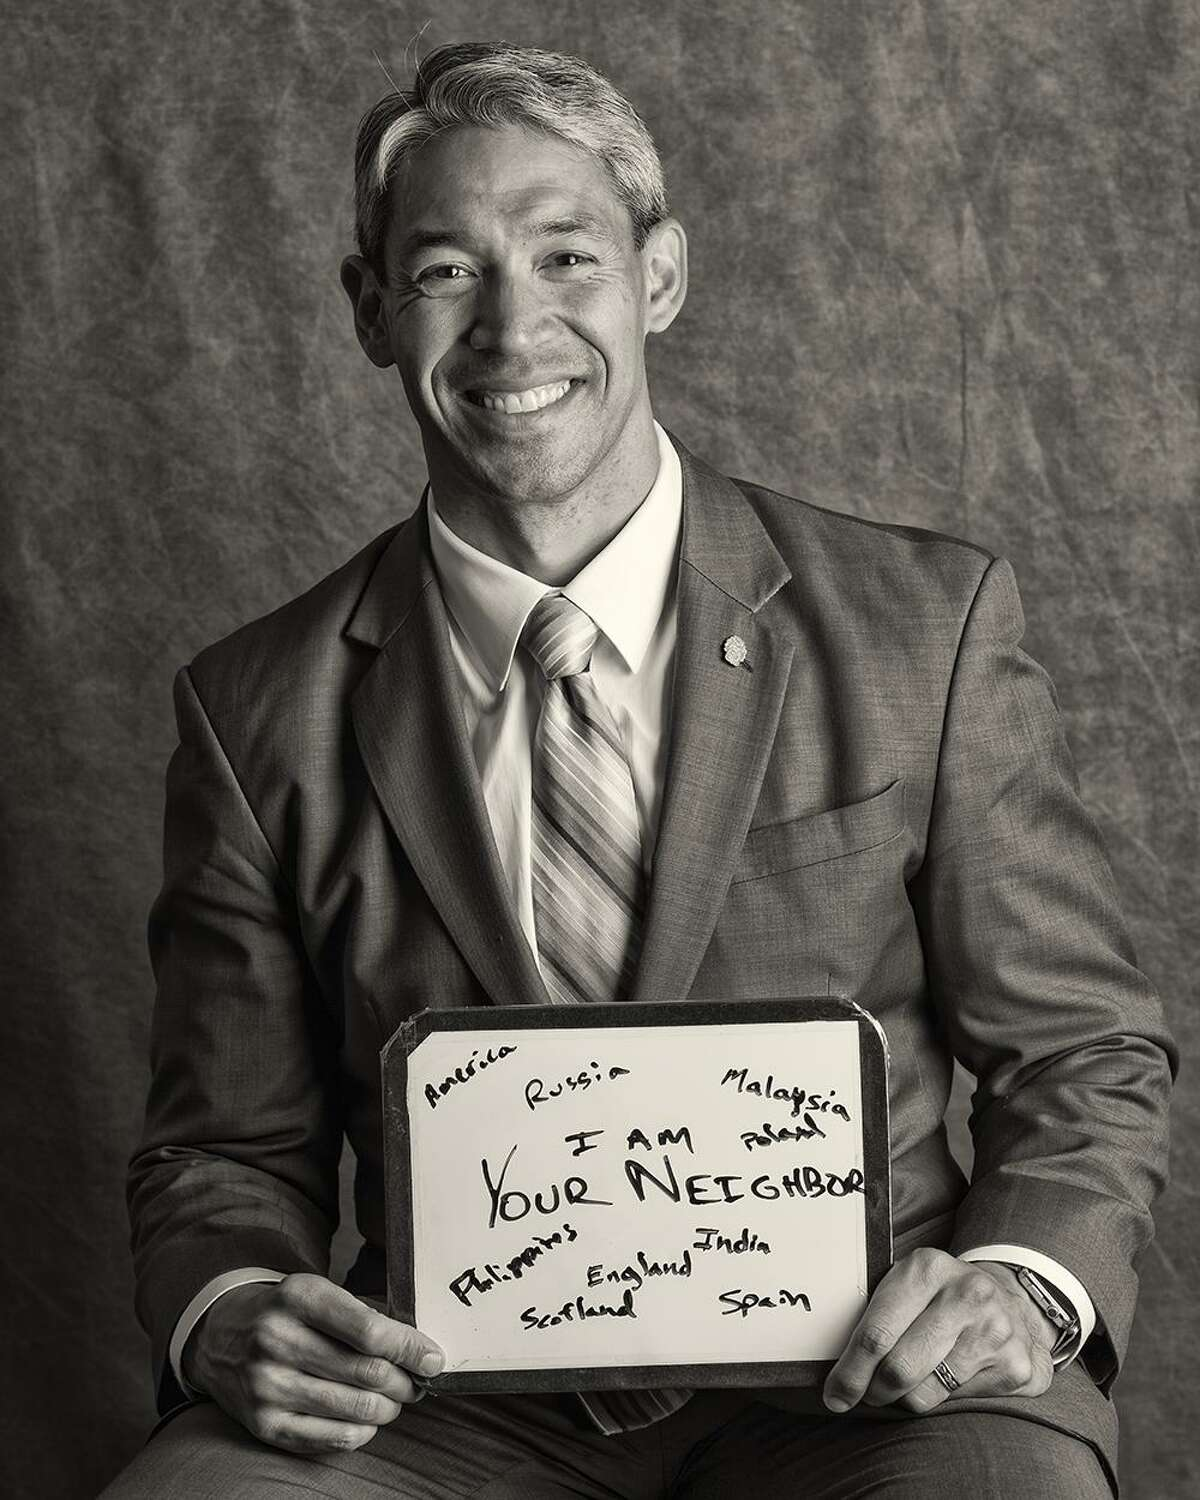 """Newly elected mayor Ron Nirenberg is one of the participants in """"Huddled Masses, Who We Are,"""" the latest portrait project by photographer Ramin Samandari."""